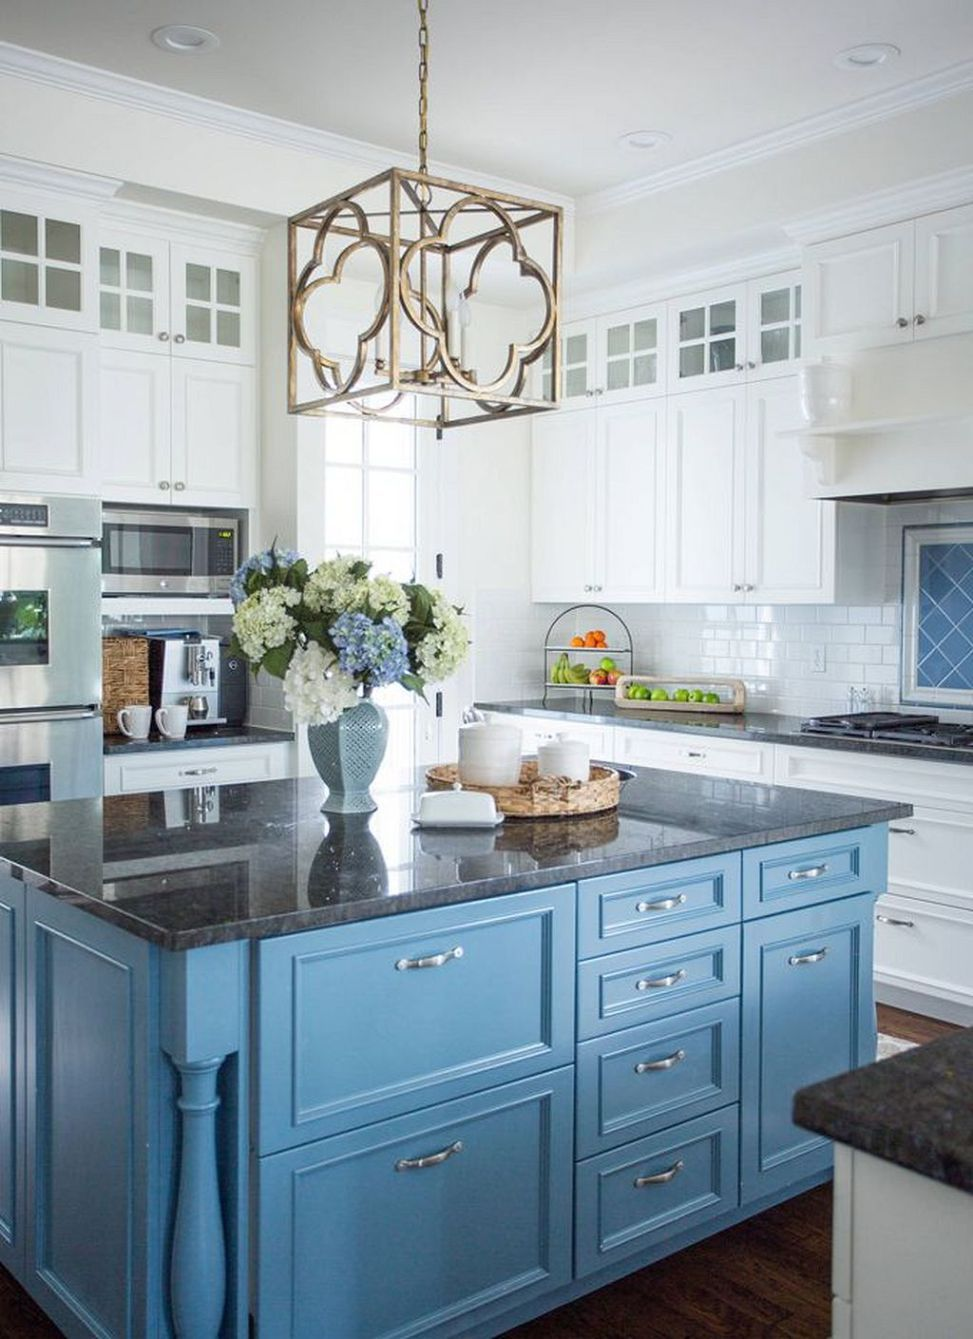 40 White And Blue Kitchen Decor Ideas 24 | Kitchen decor, Kitchens ...